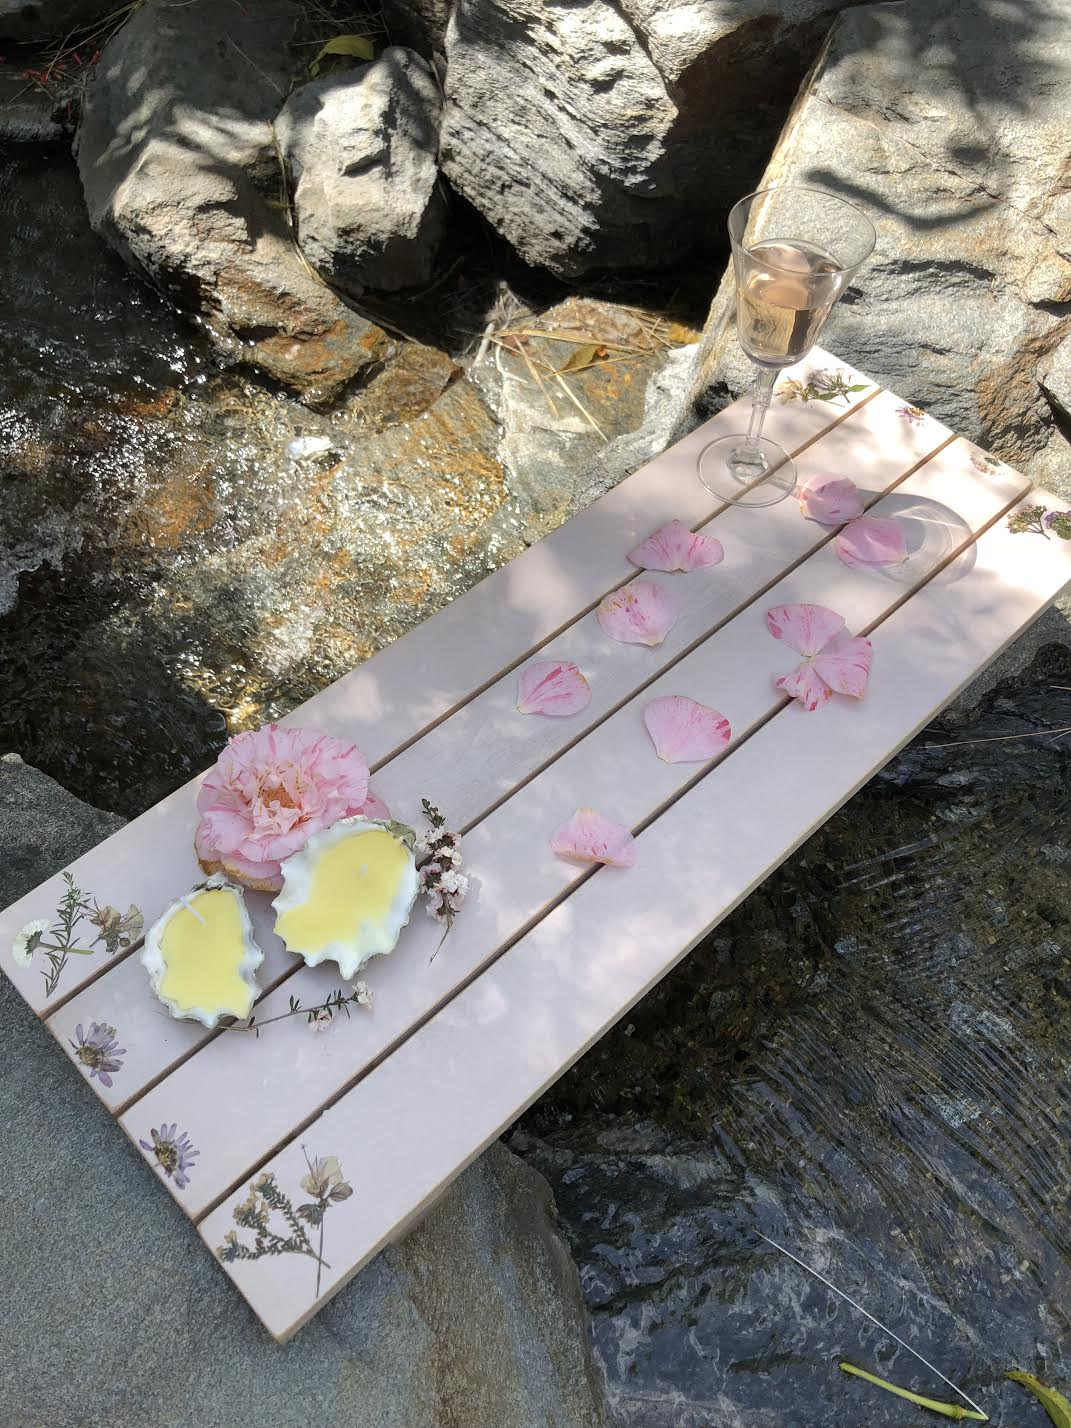 Handmade painted wood bath tray with pressed flowers